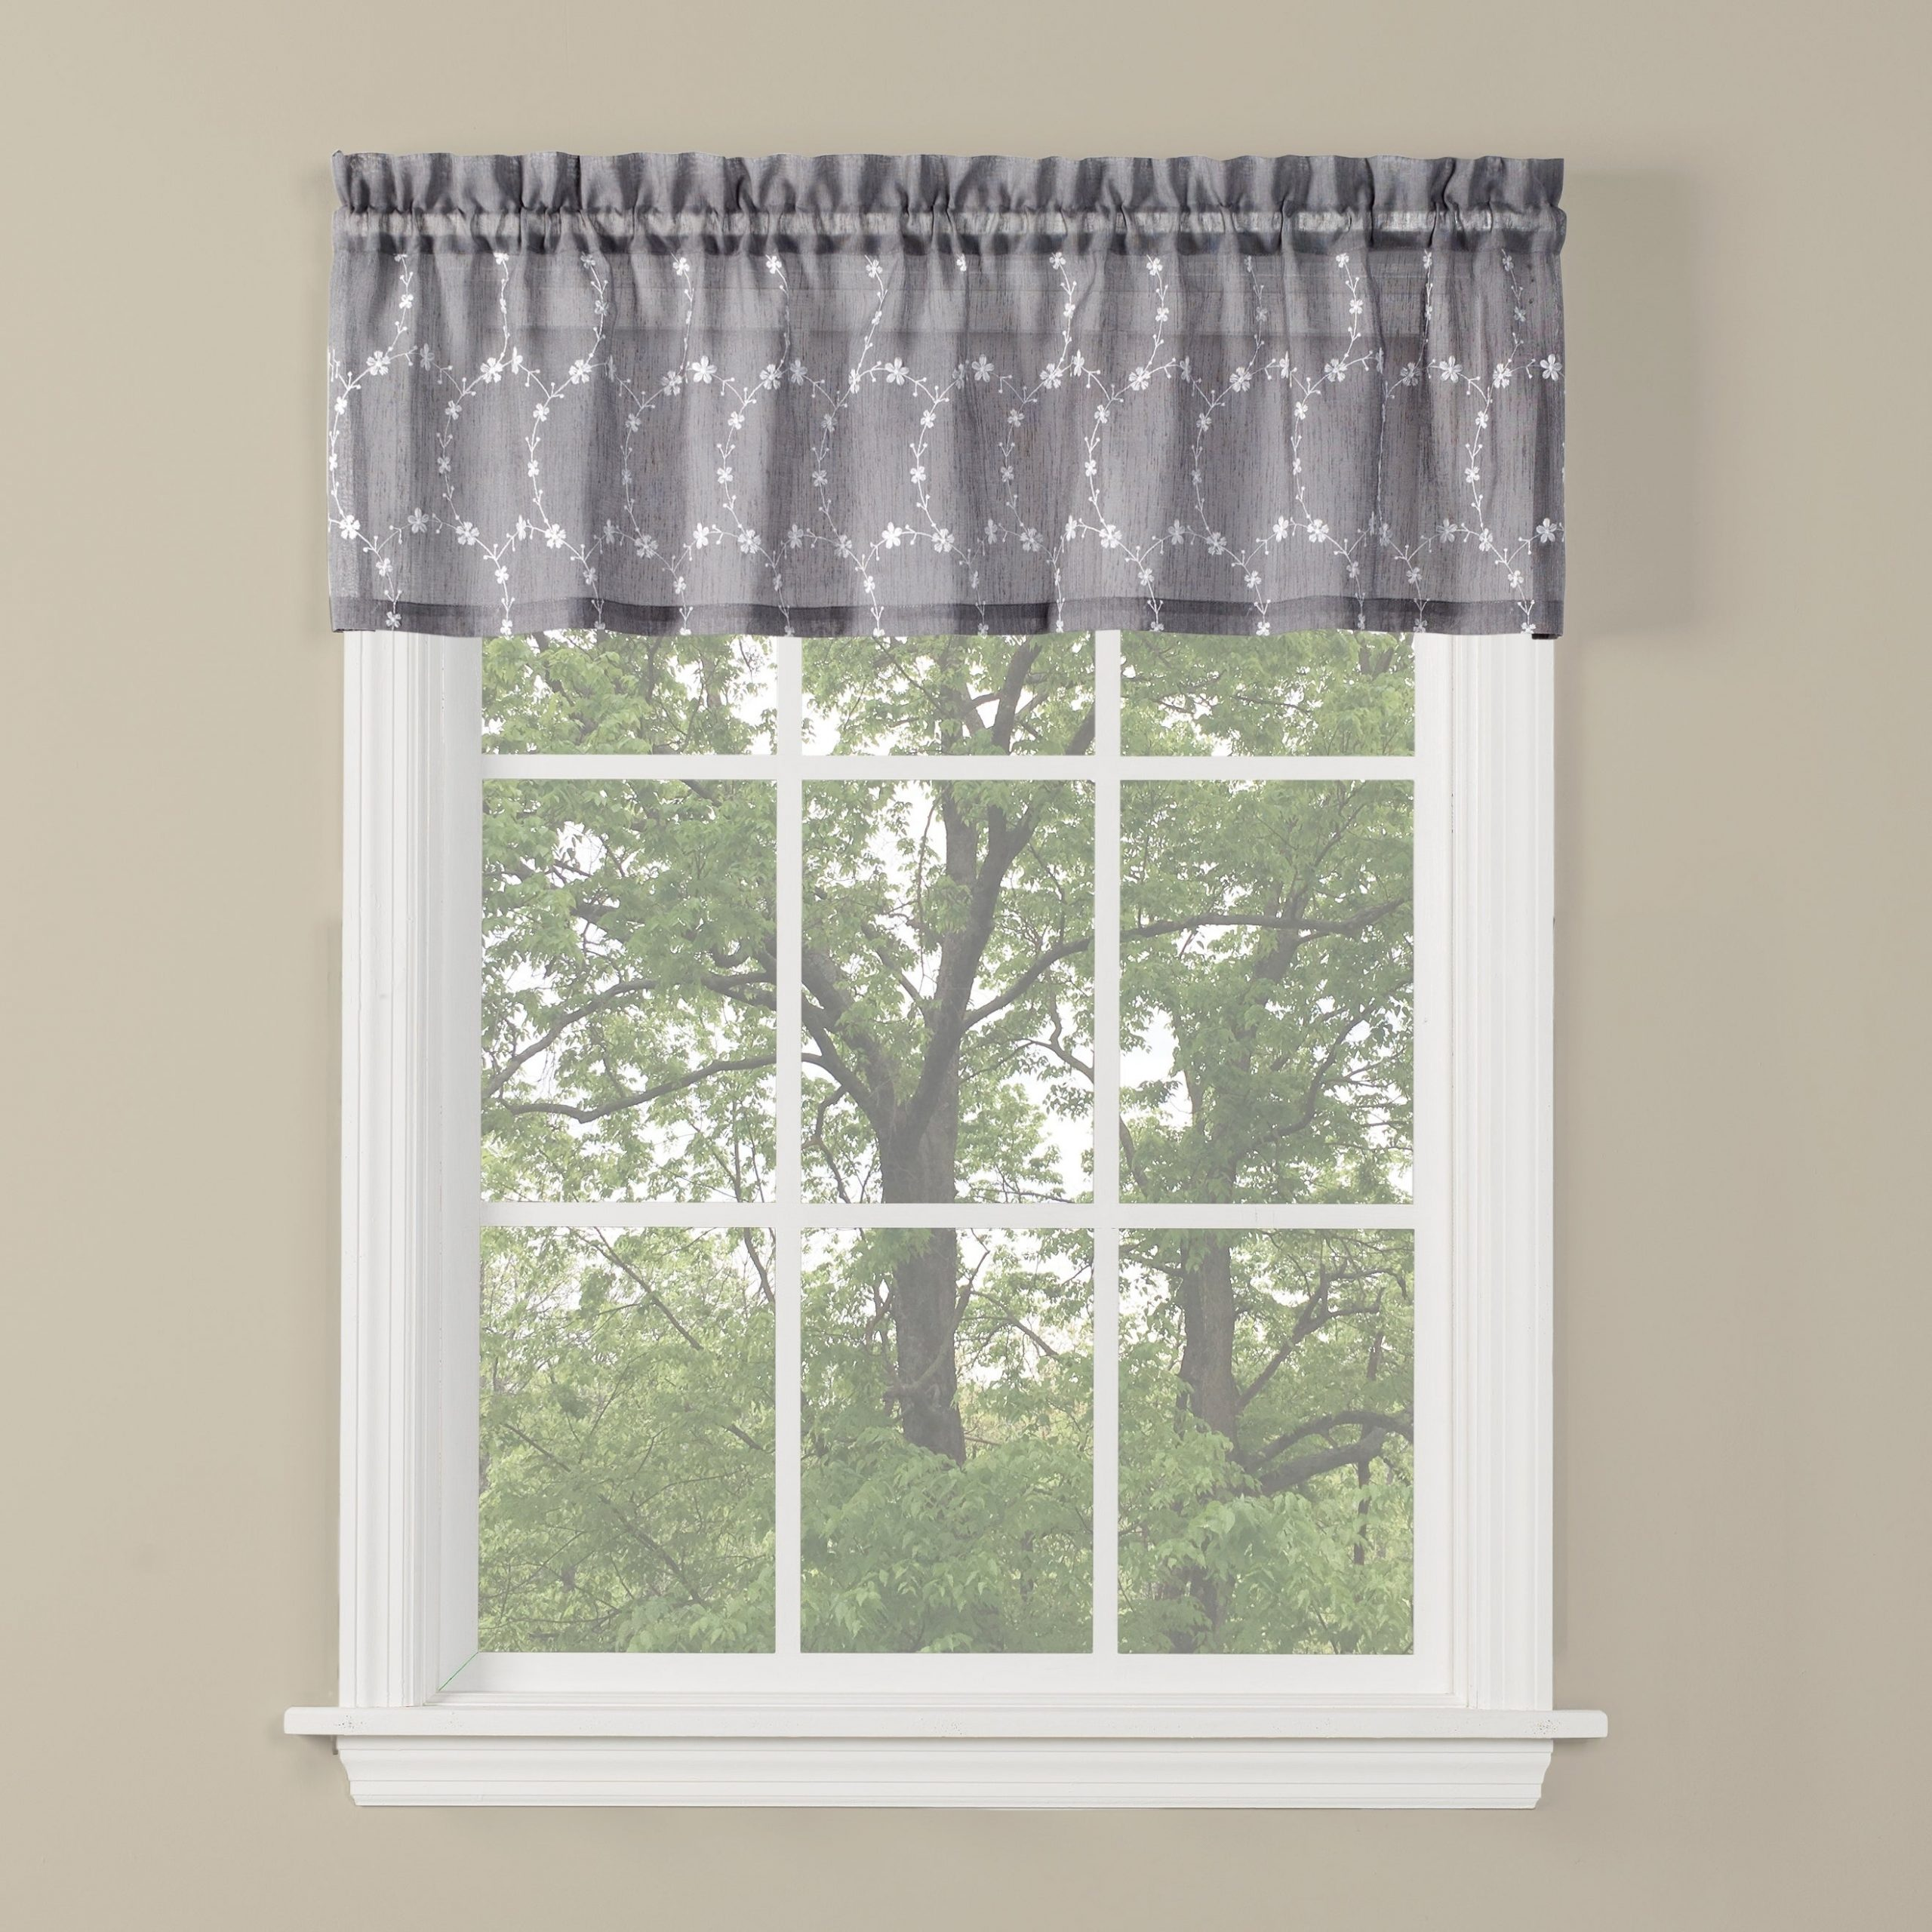 Skl Home Briarwood 13 Inch Valance In Dove Gray Pertaining To Flinders Forge 30 Inch Tiers In Dove Grey (View 8 of 20)